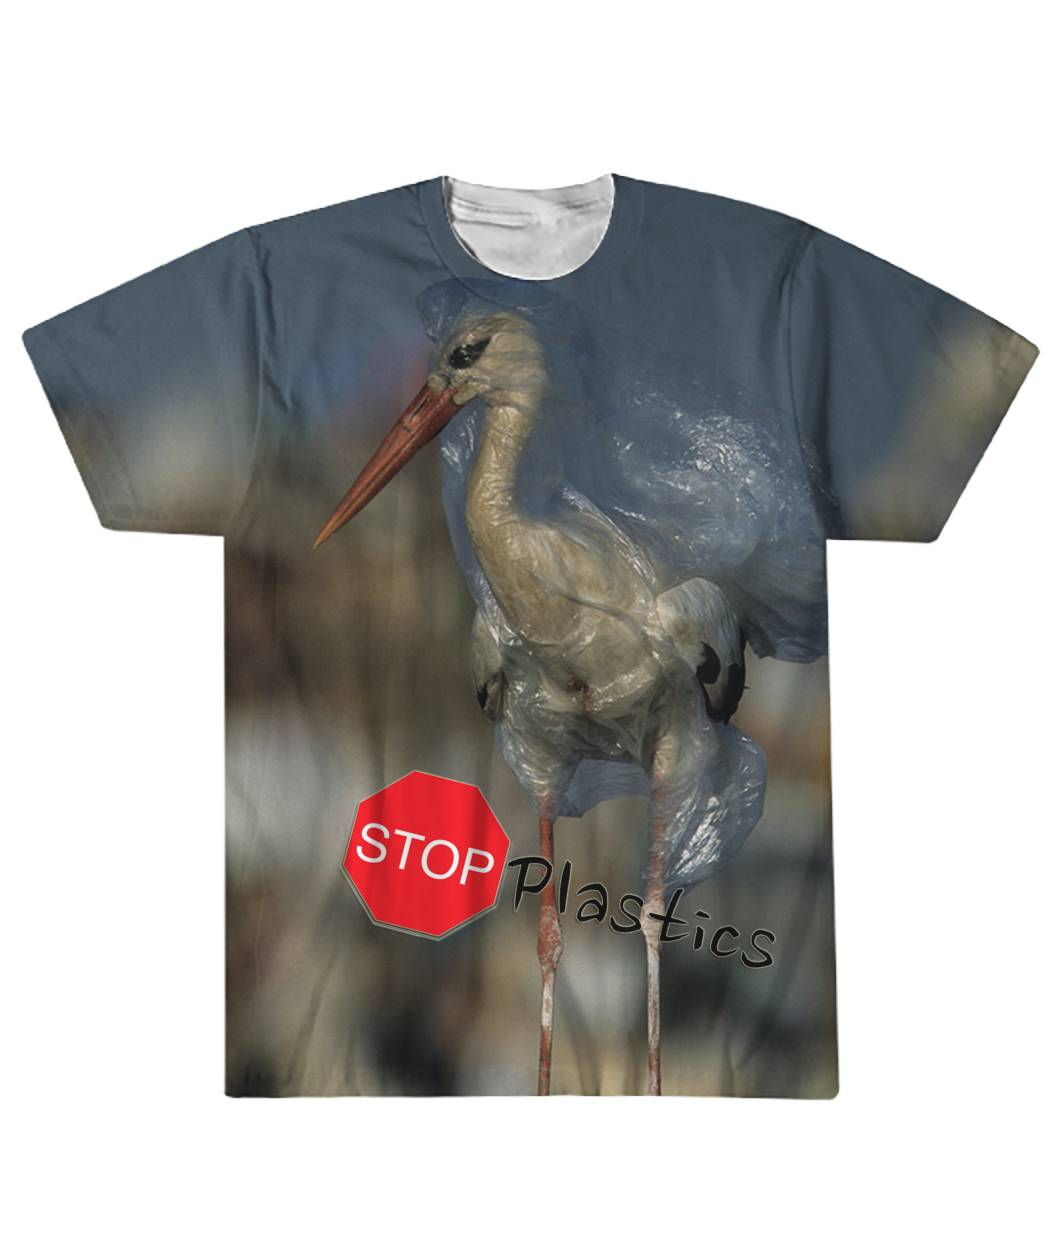 Stop plastic - Save the Ocean Sublimation Tee